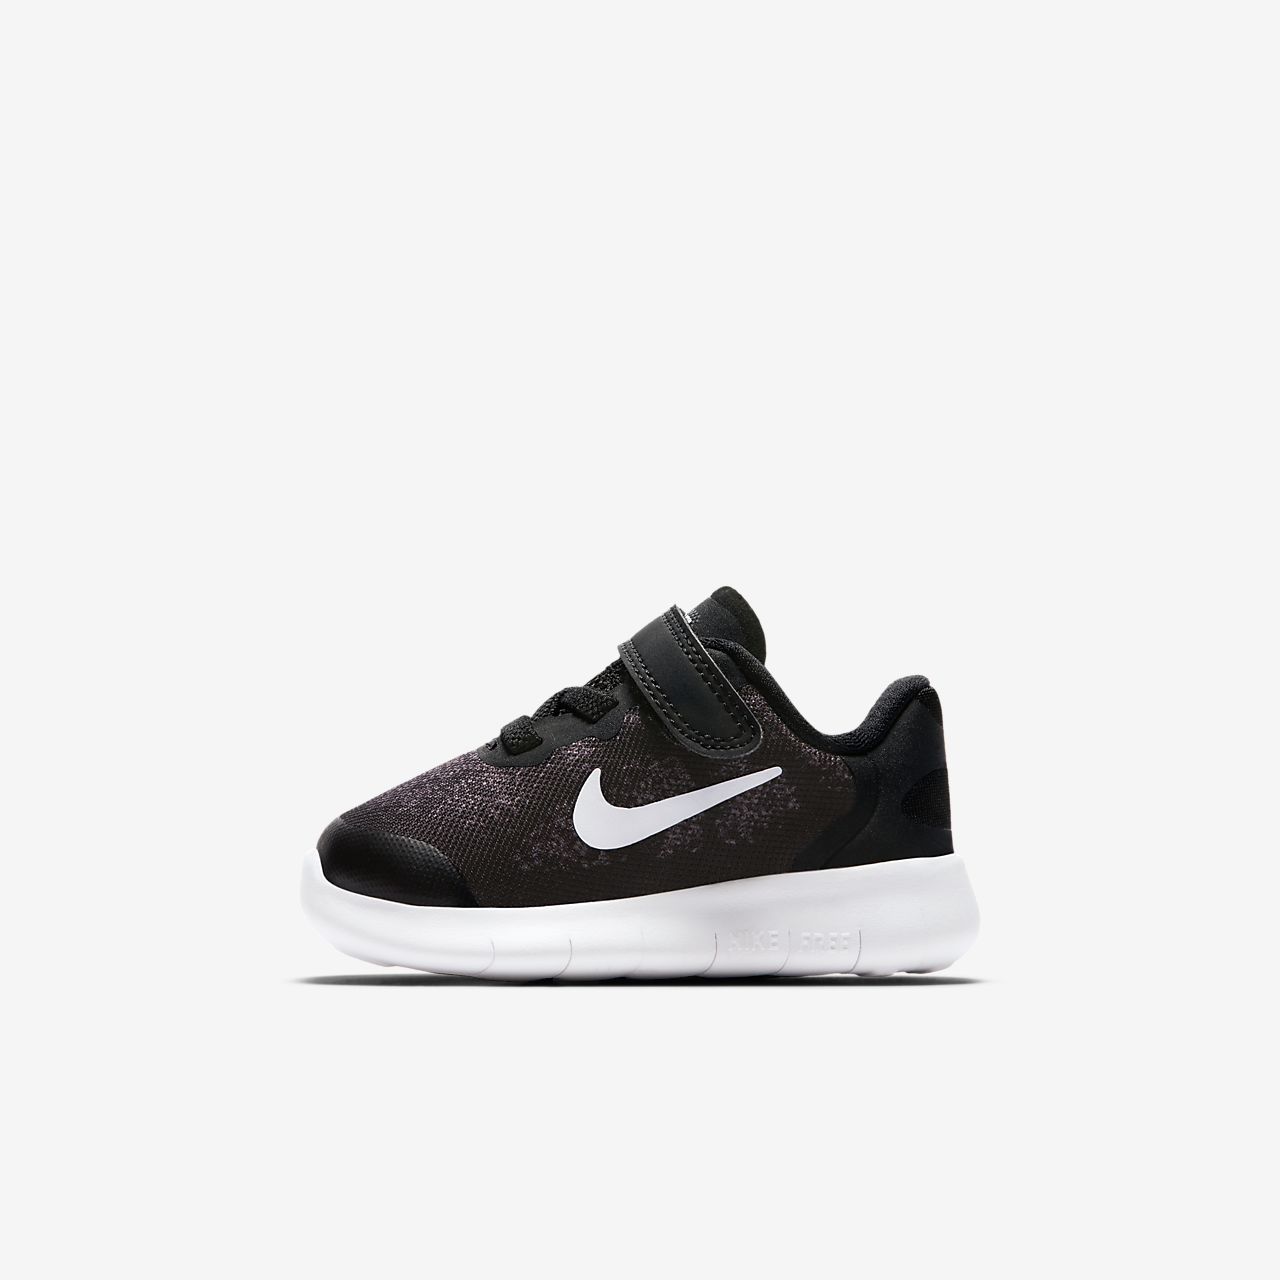 boys toddler nike free rn running shoes